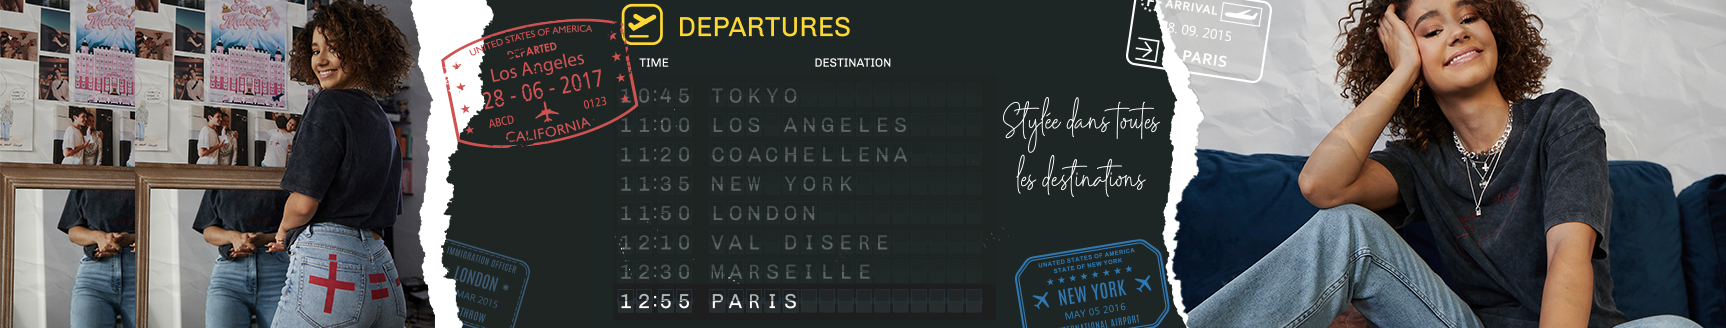 DestinationParis